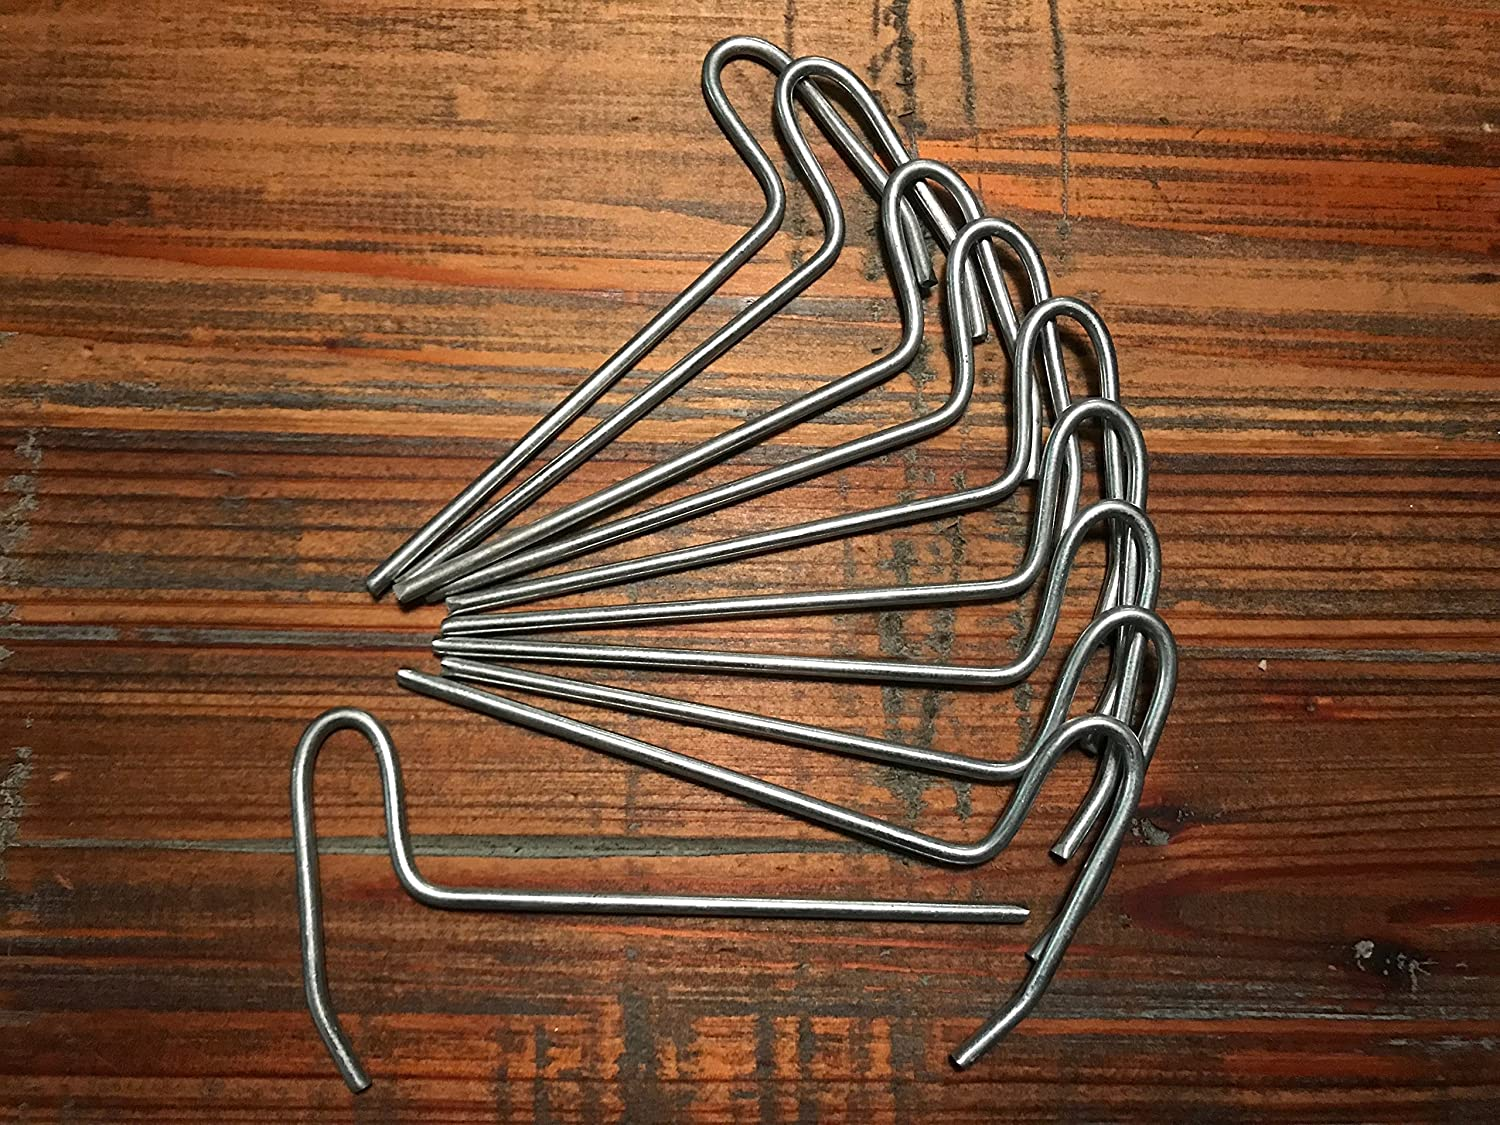 Tezula Plants Rhizome Clips for Orchids in Clay Pots – 6 Galvanized Steel 10